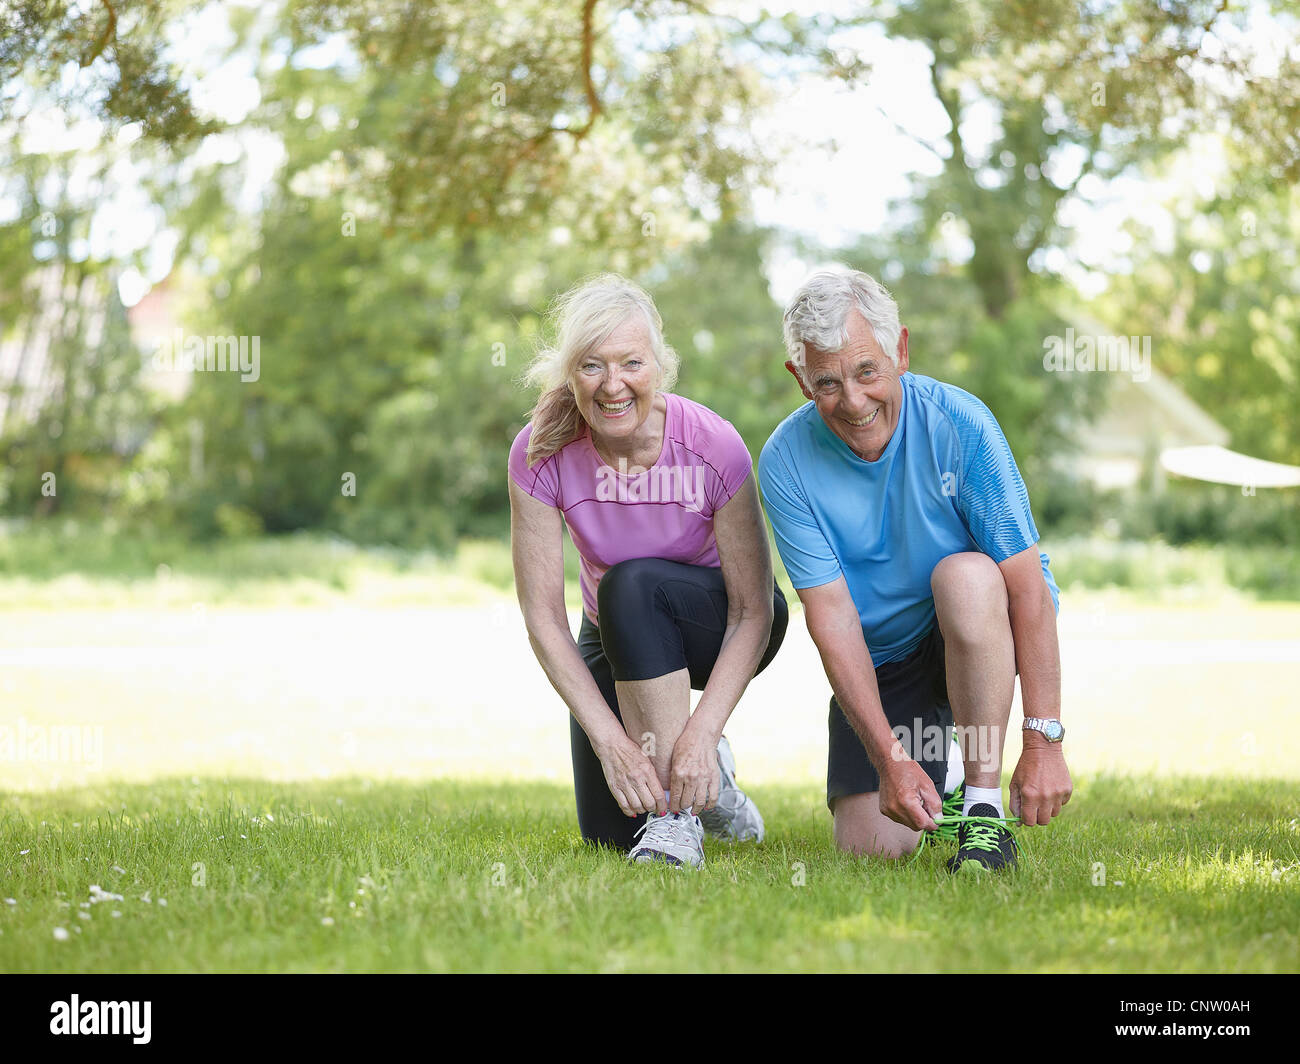 Older couple tying their shoelaces - Stock Image